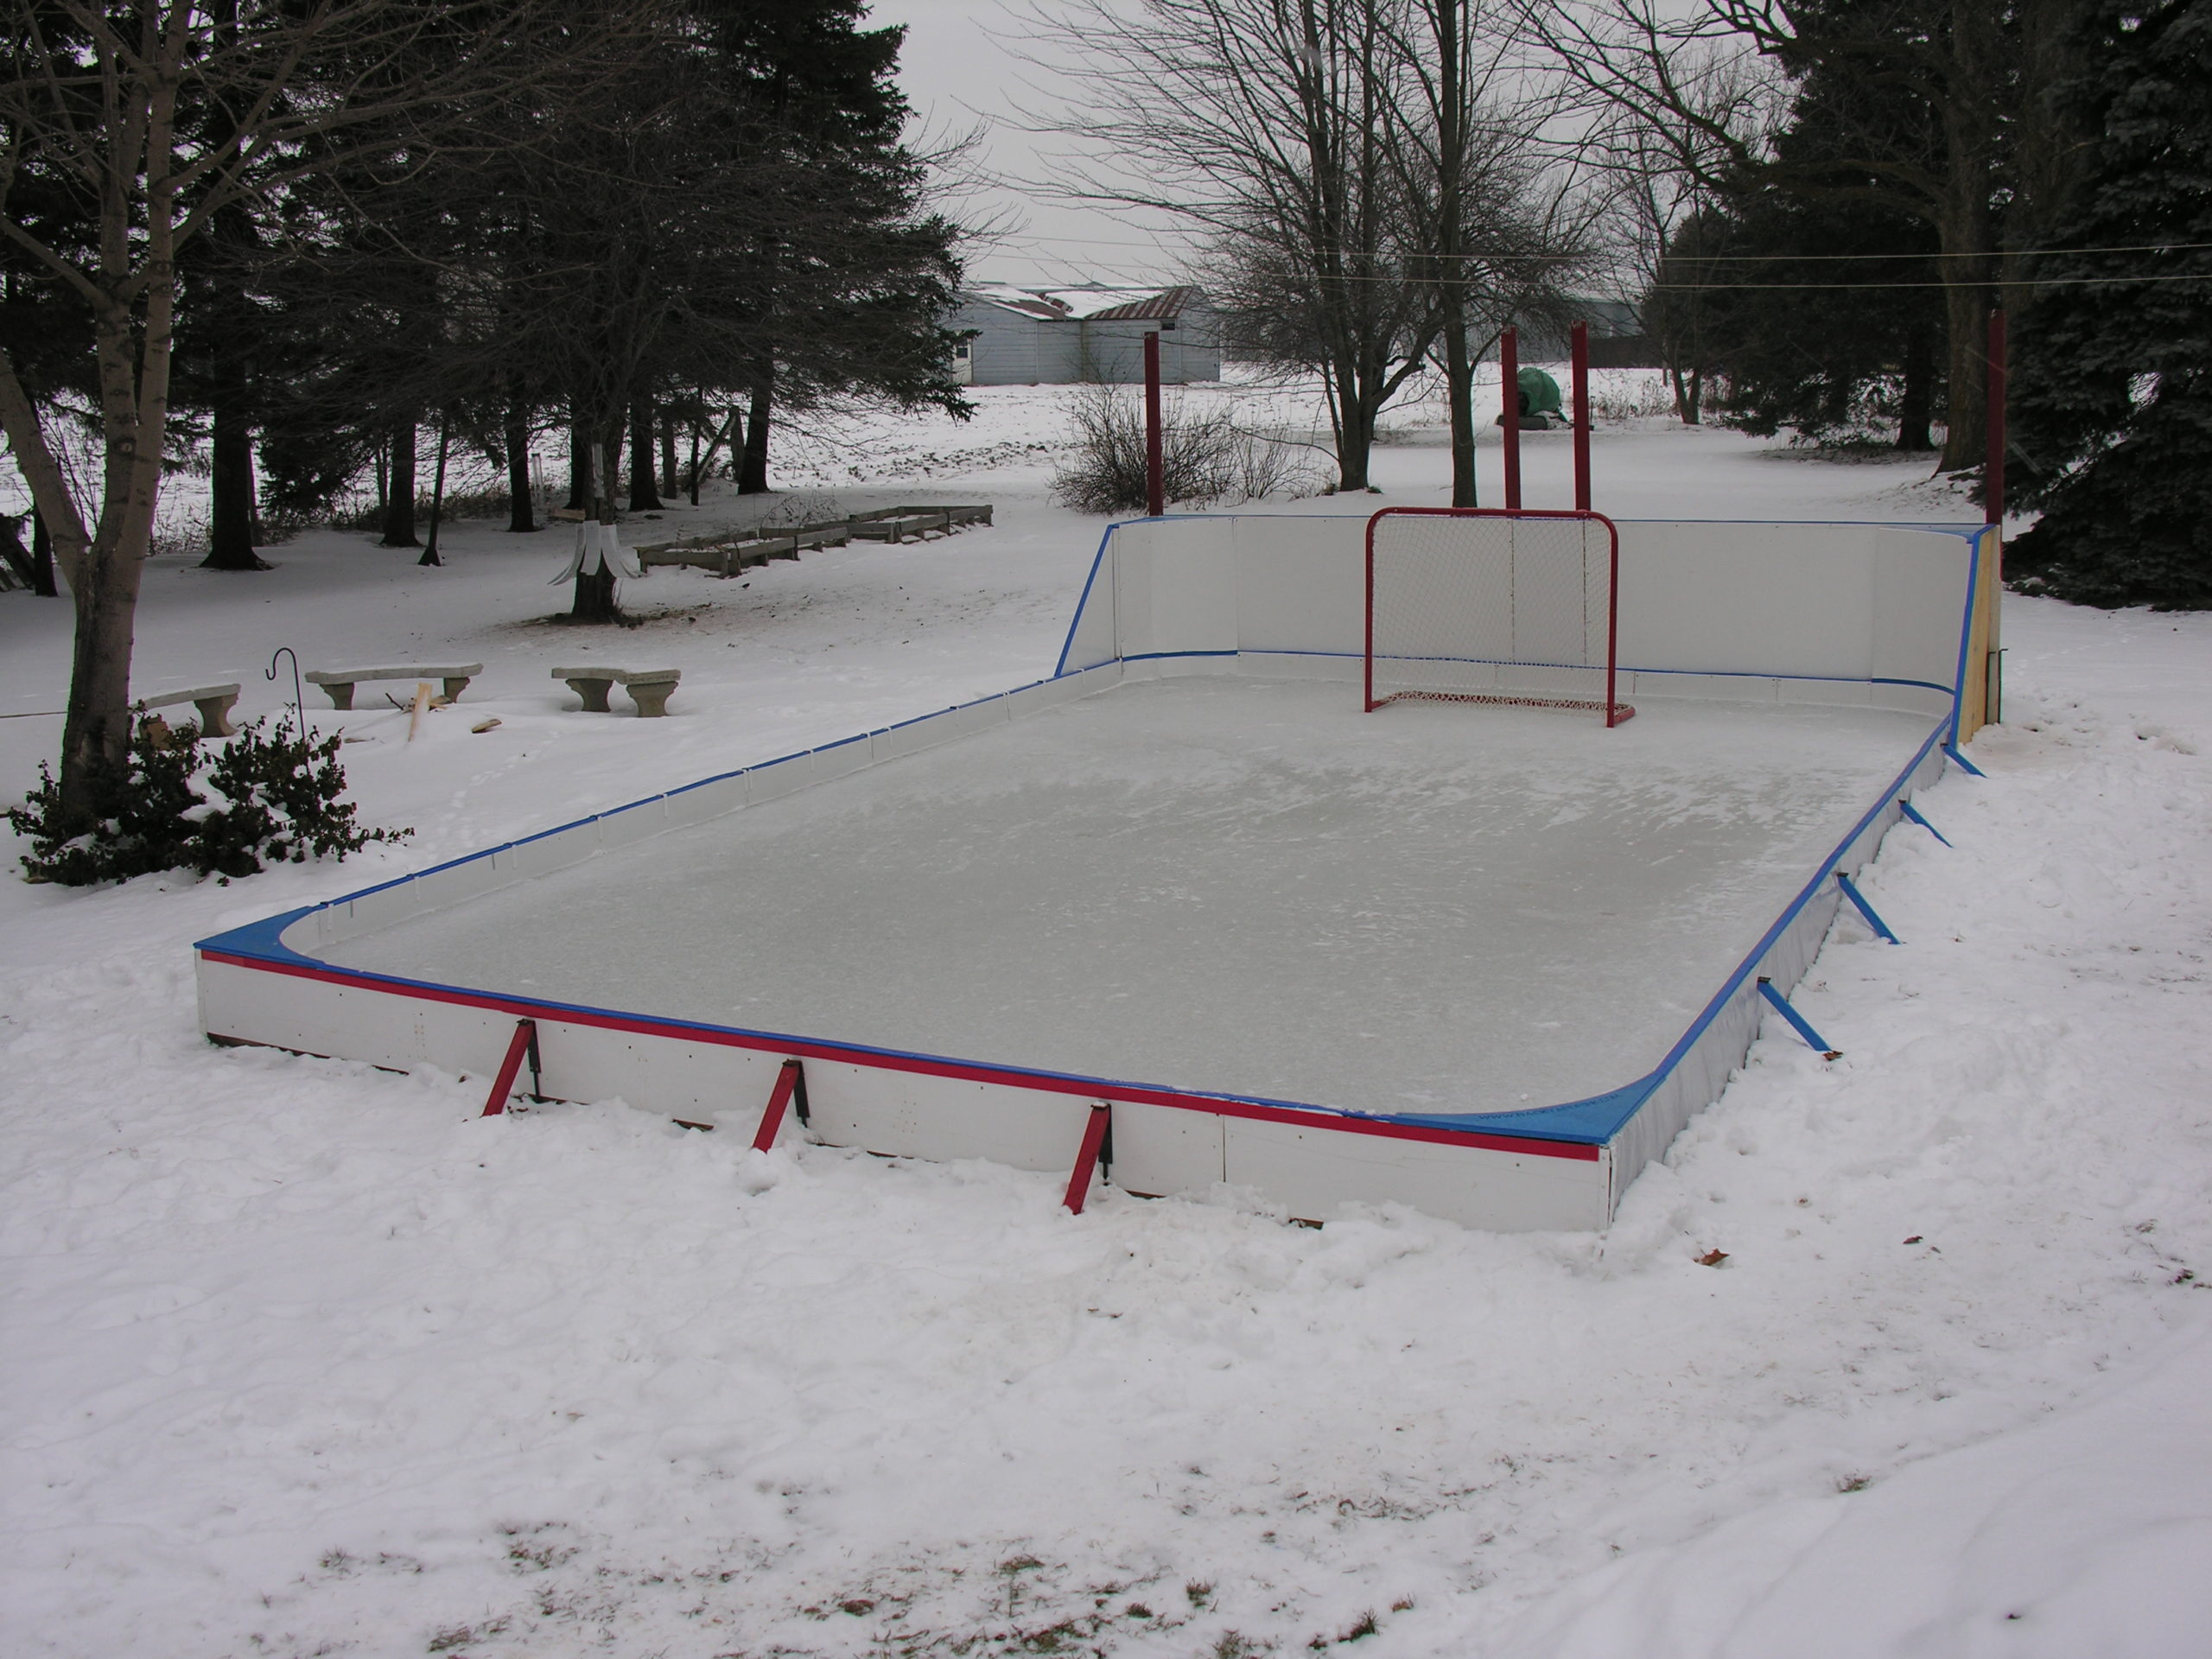 Rink Stake 5 In 1 Combo Pack Backyard Rink Best backyard ice rink kit canada